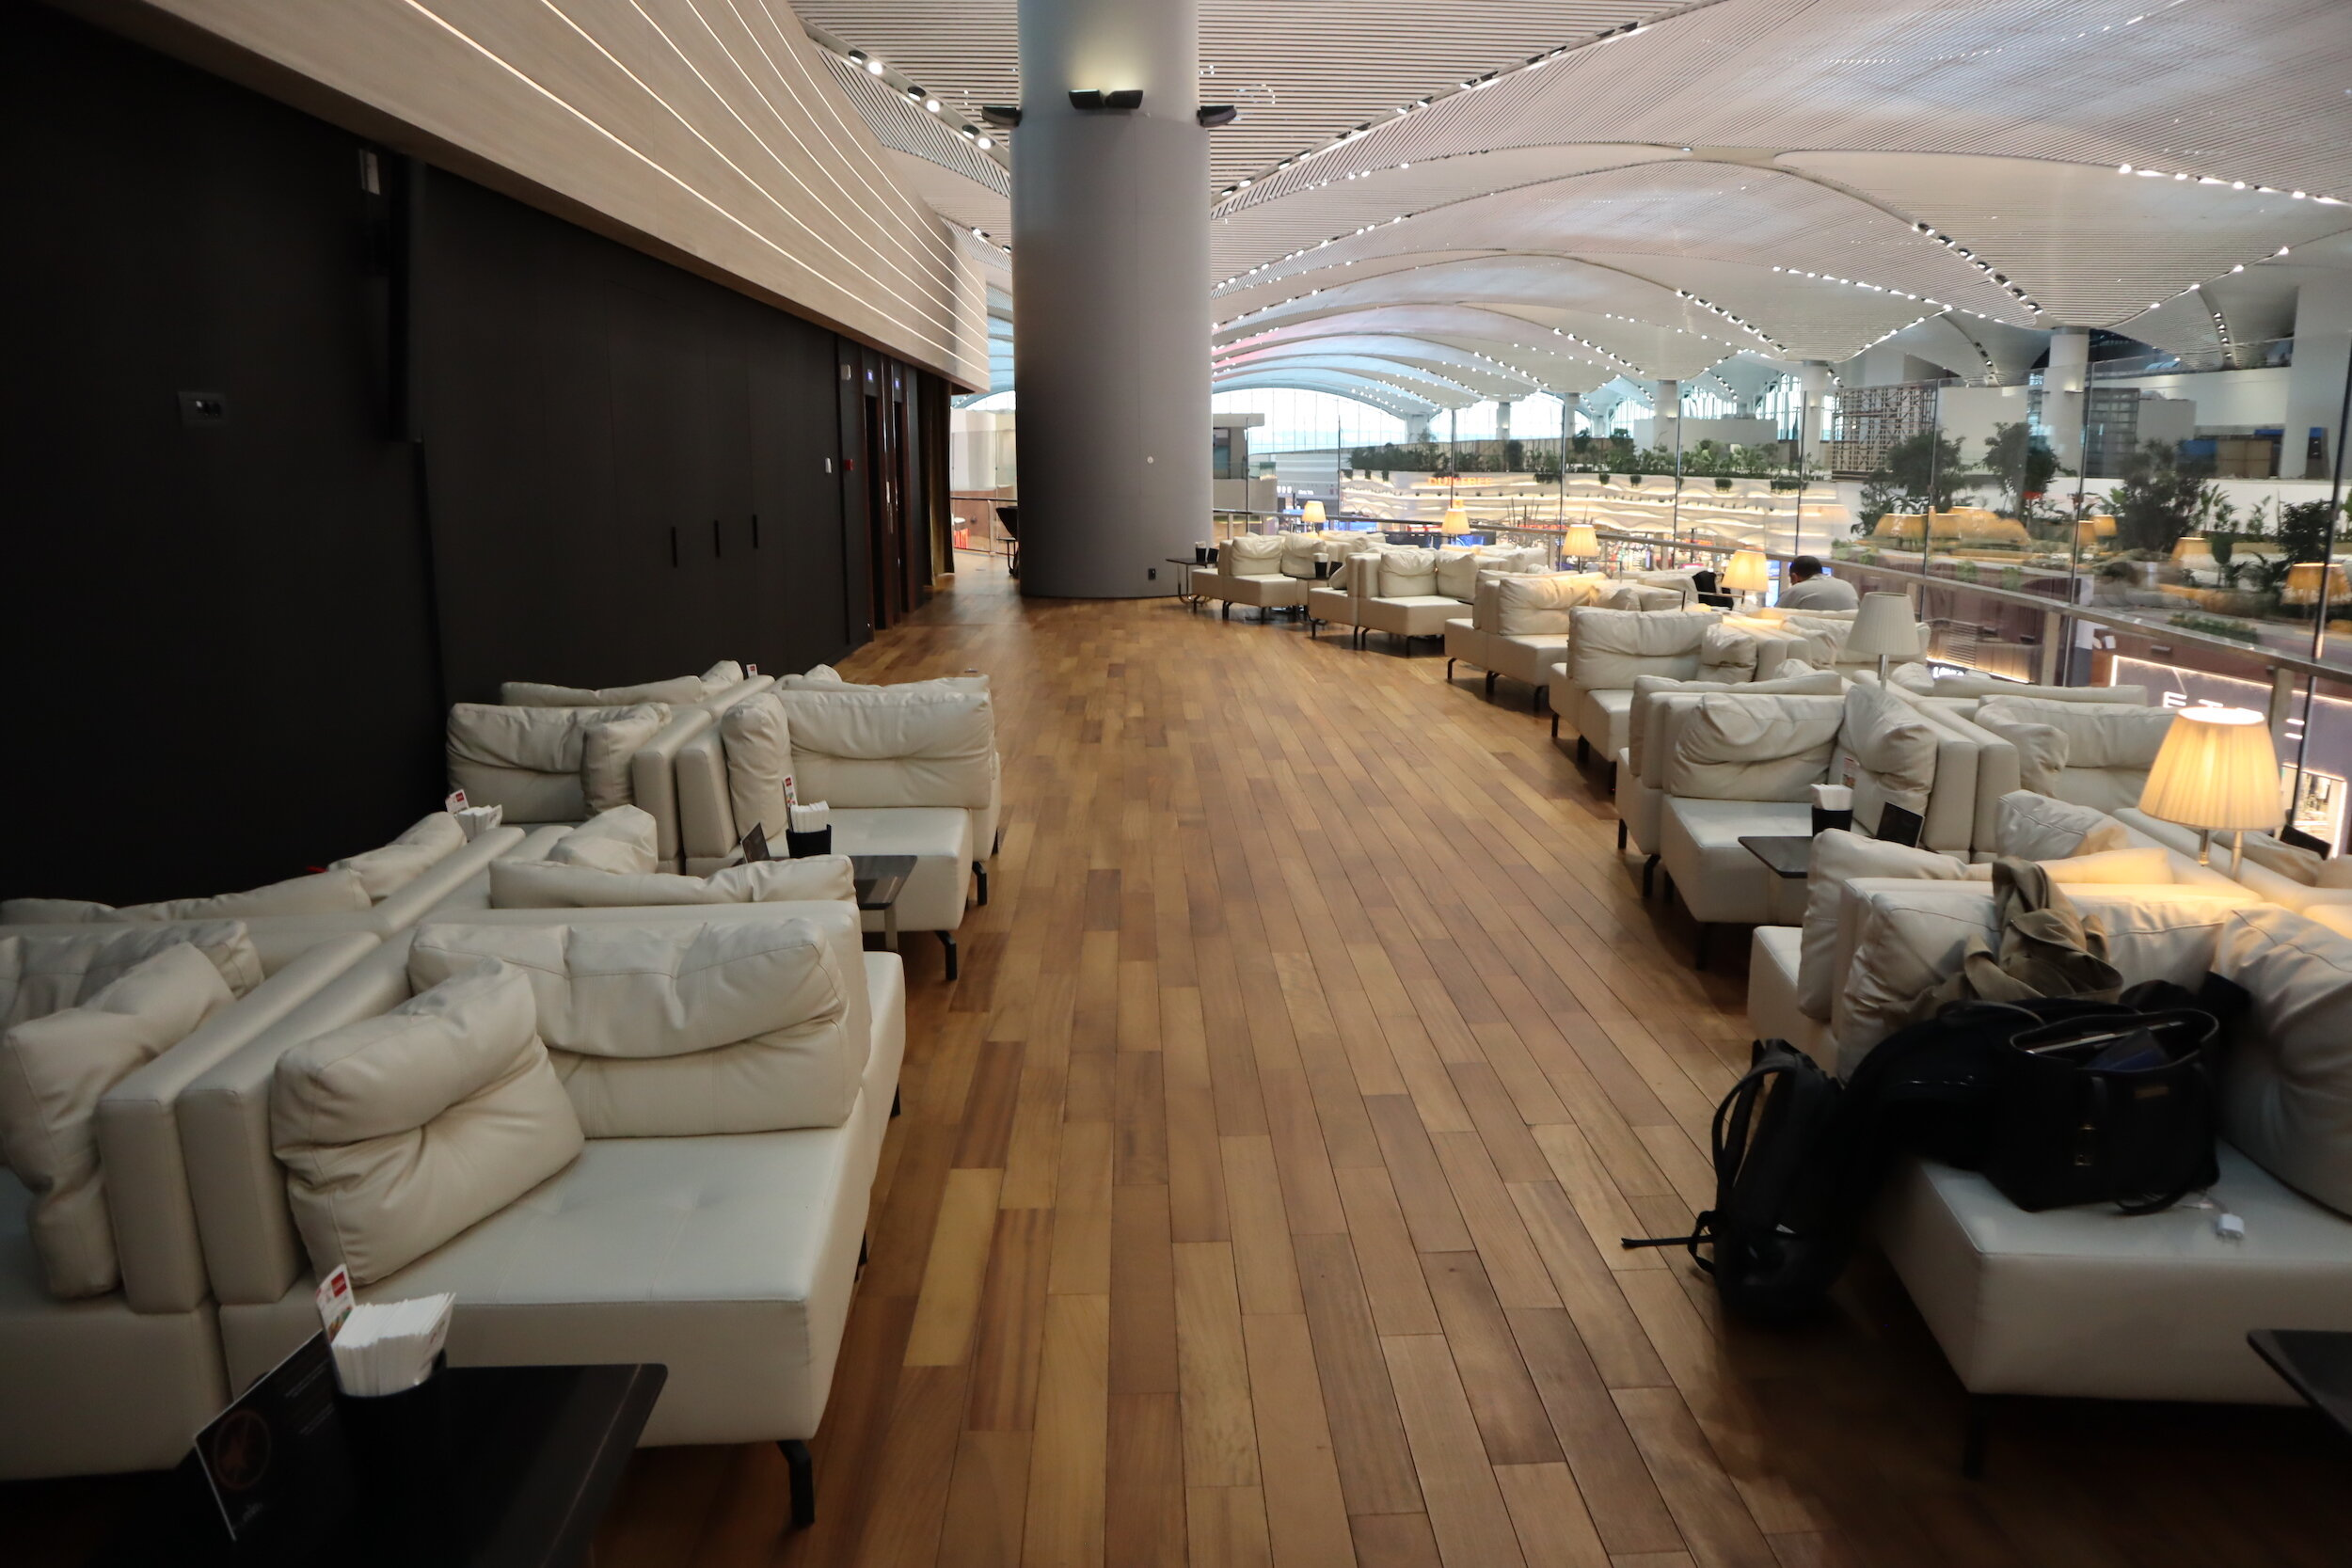 Turkish Airlines Business Lounge Istanbul – Rest area